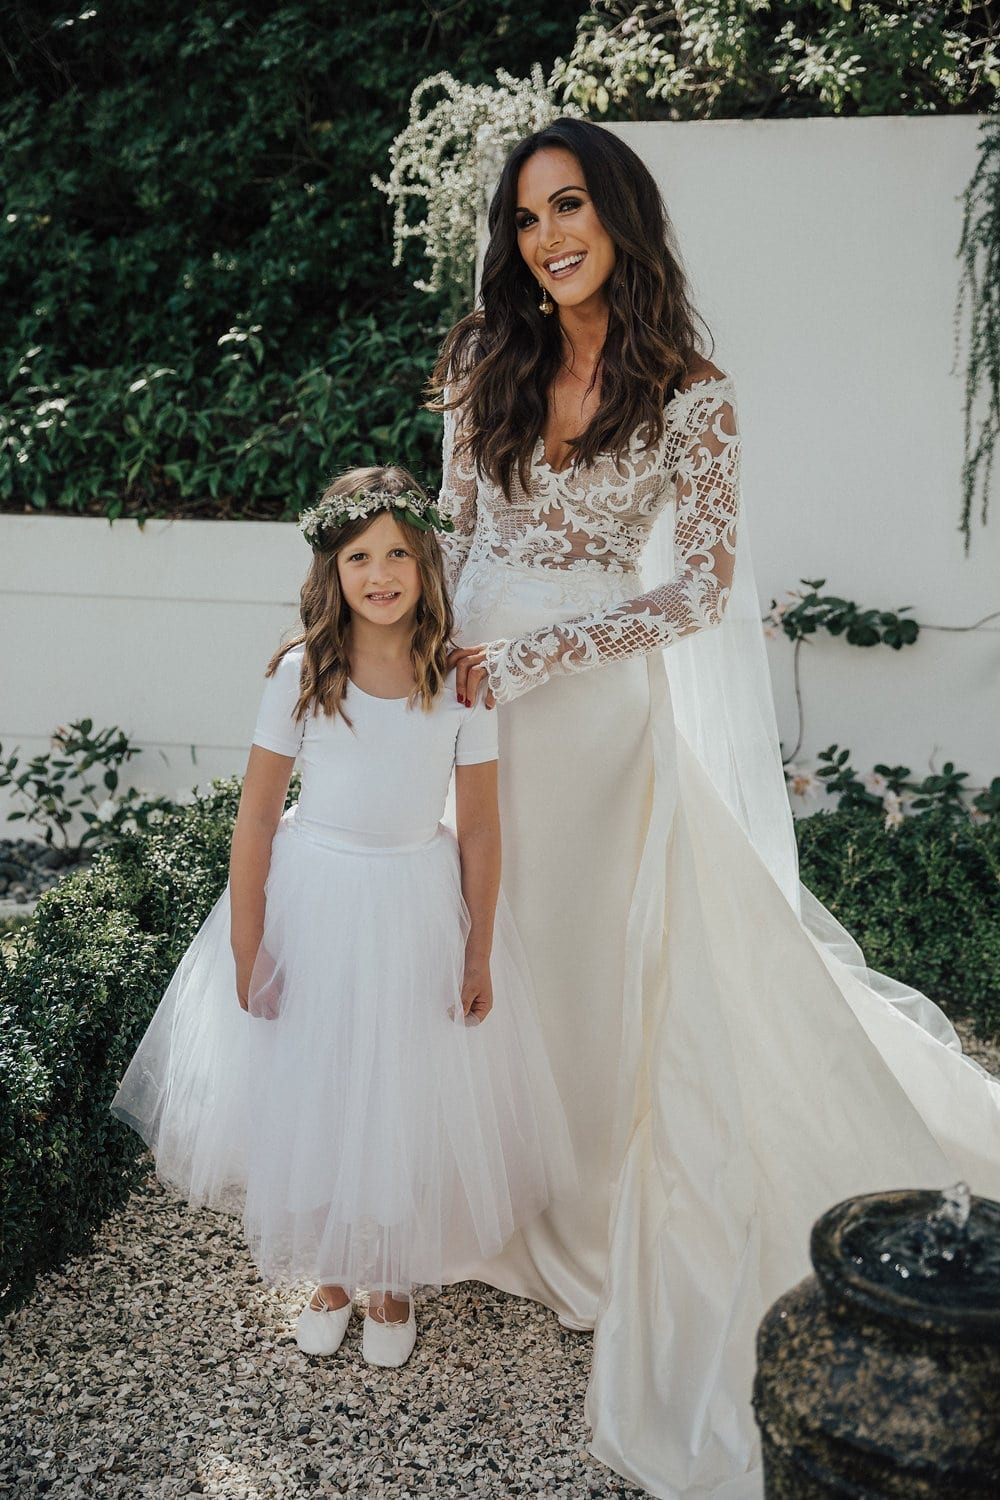 Real Weddings | Vinka Design | Real Brides Wearing Vinka Gowns | Hannah and Campbell - Hannah with little flower girl